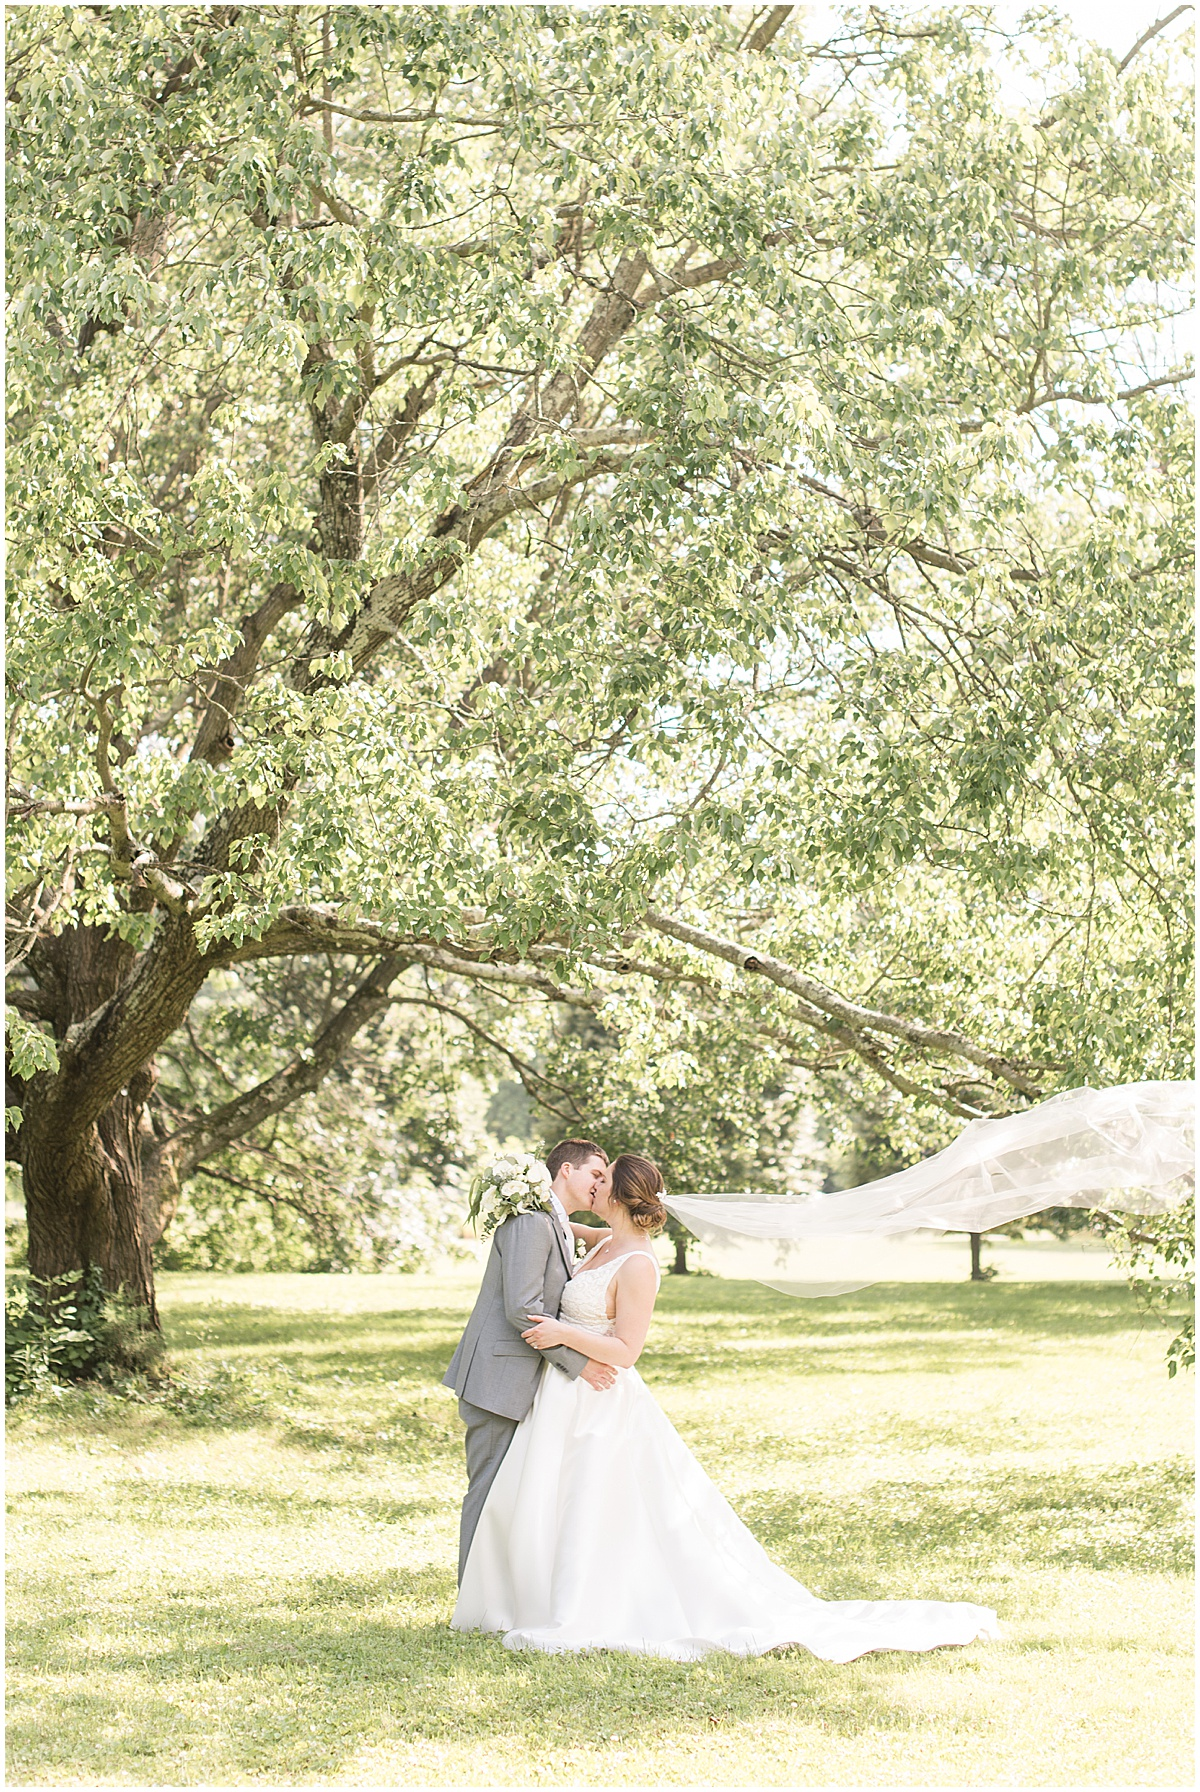 Wedding photos at Holliday Park in Indianapolis